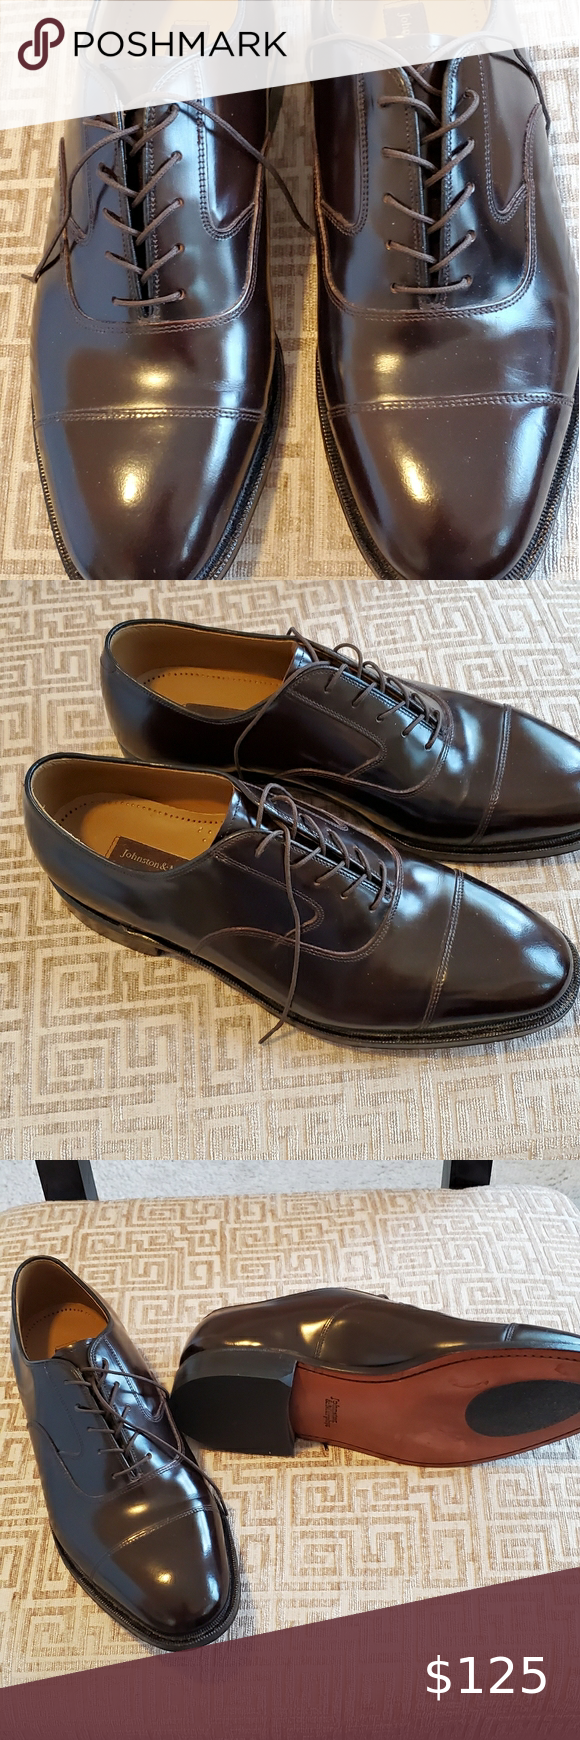 Johnston and murphy shoes, Dress shoes